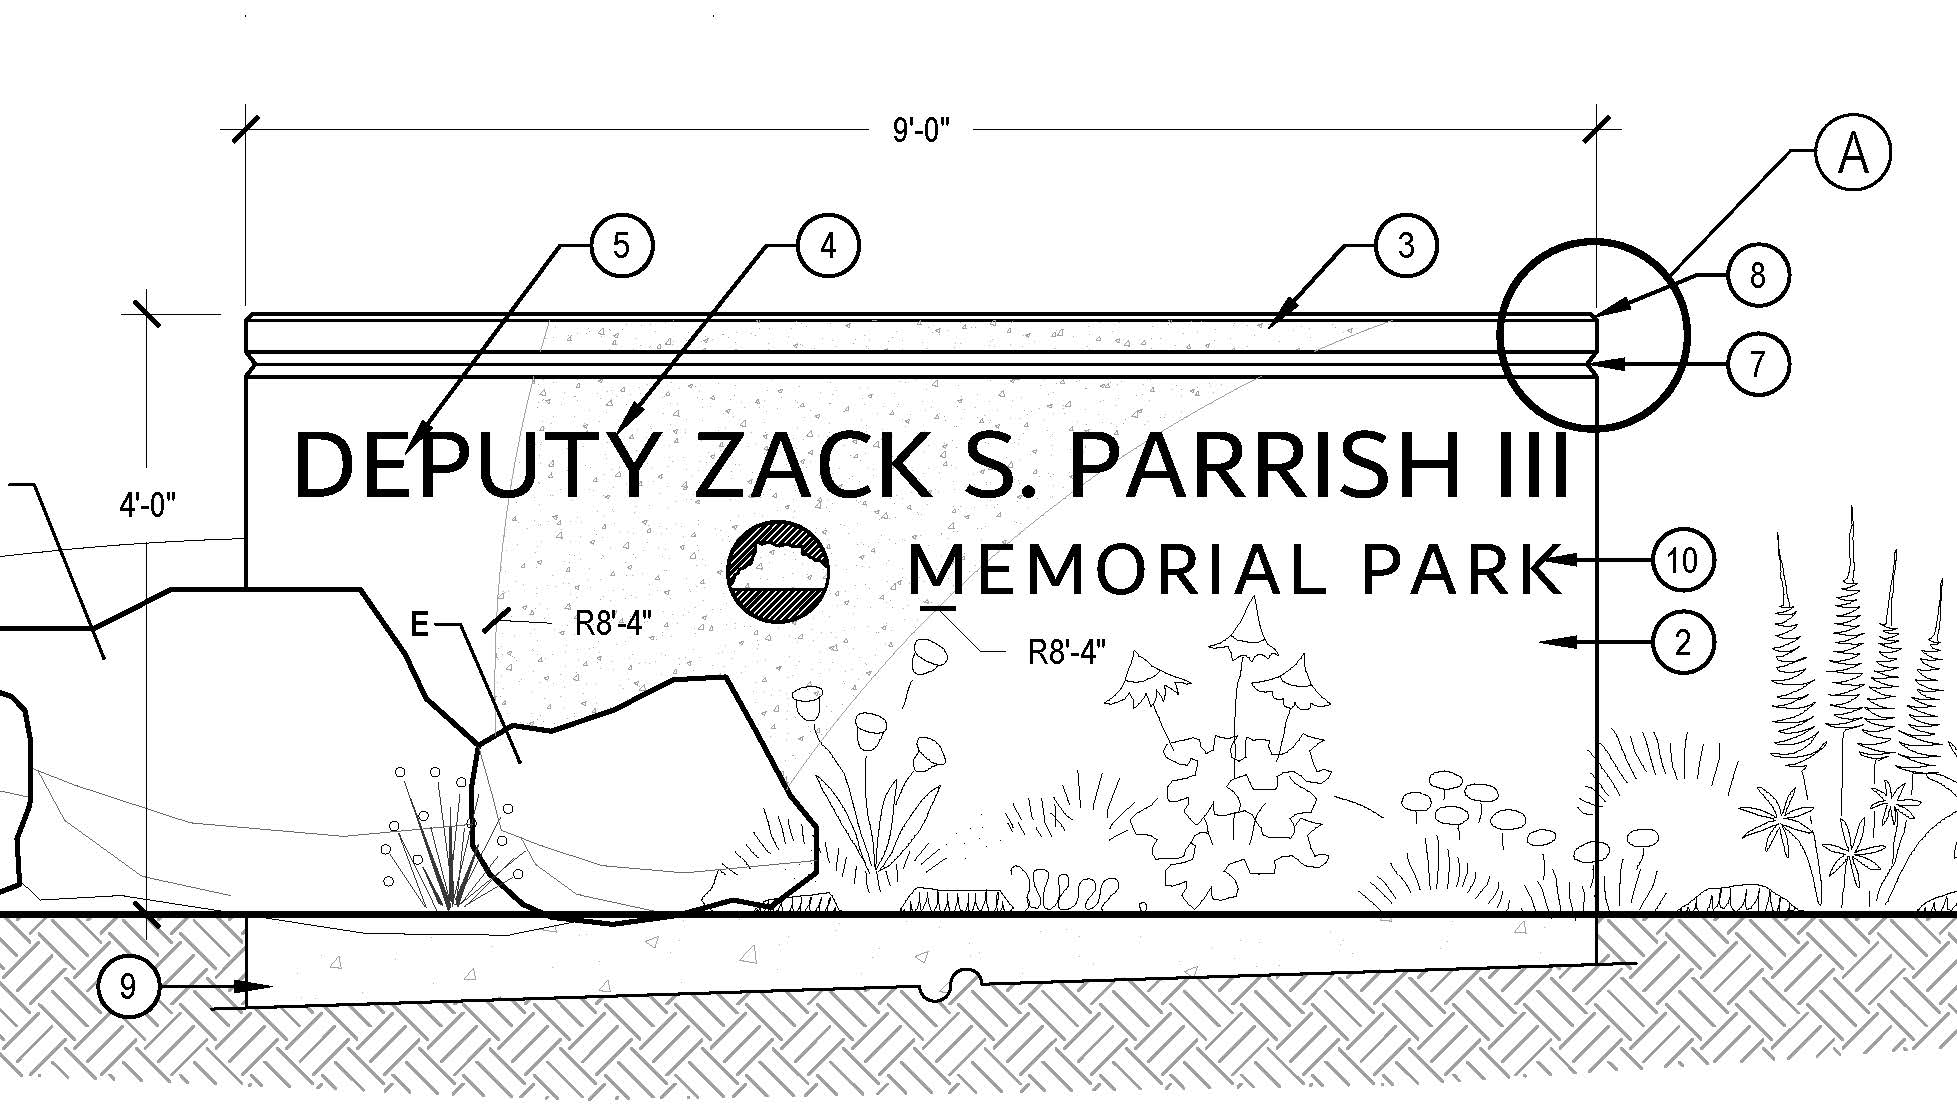 Monument Sign rendering for Zack S. Parrish III Memorial Park